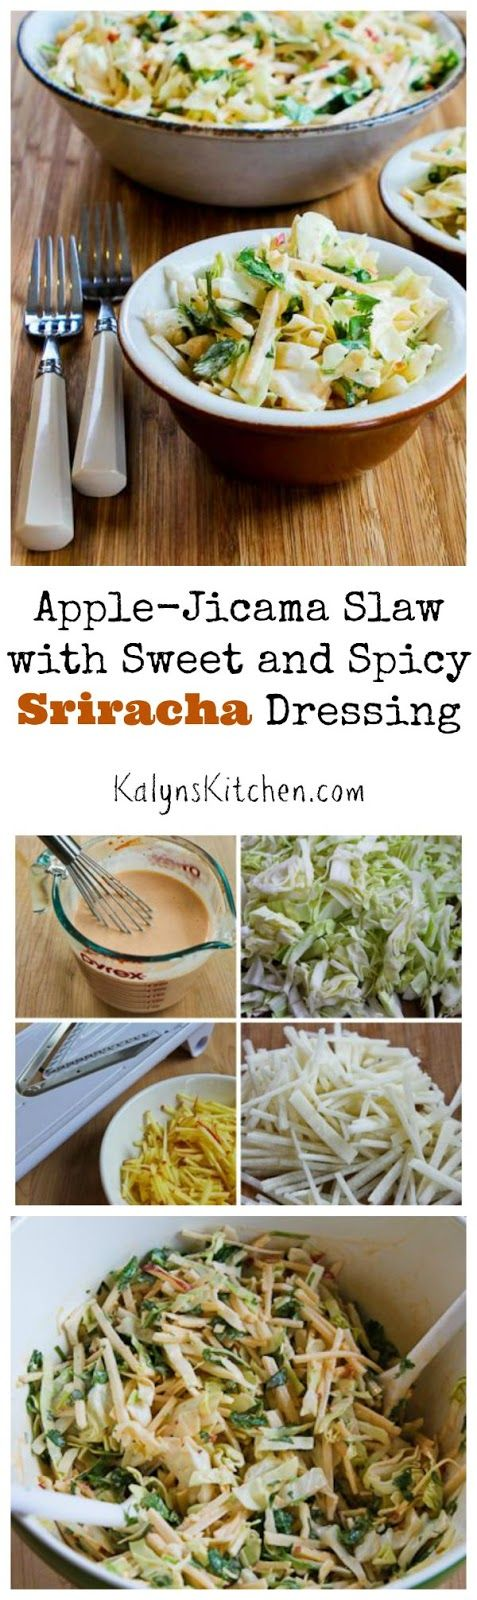 This Apple-Jicama Slaw with Sweet and Spicy Sriracha Dressing is perfect for Fall!  [found on KalynsKitchen.com]